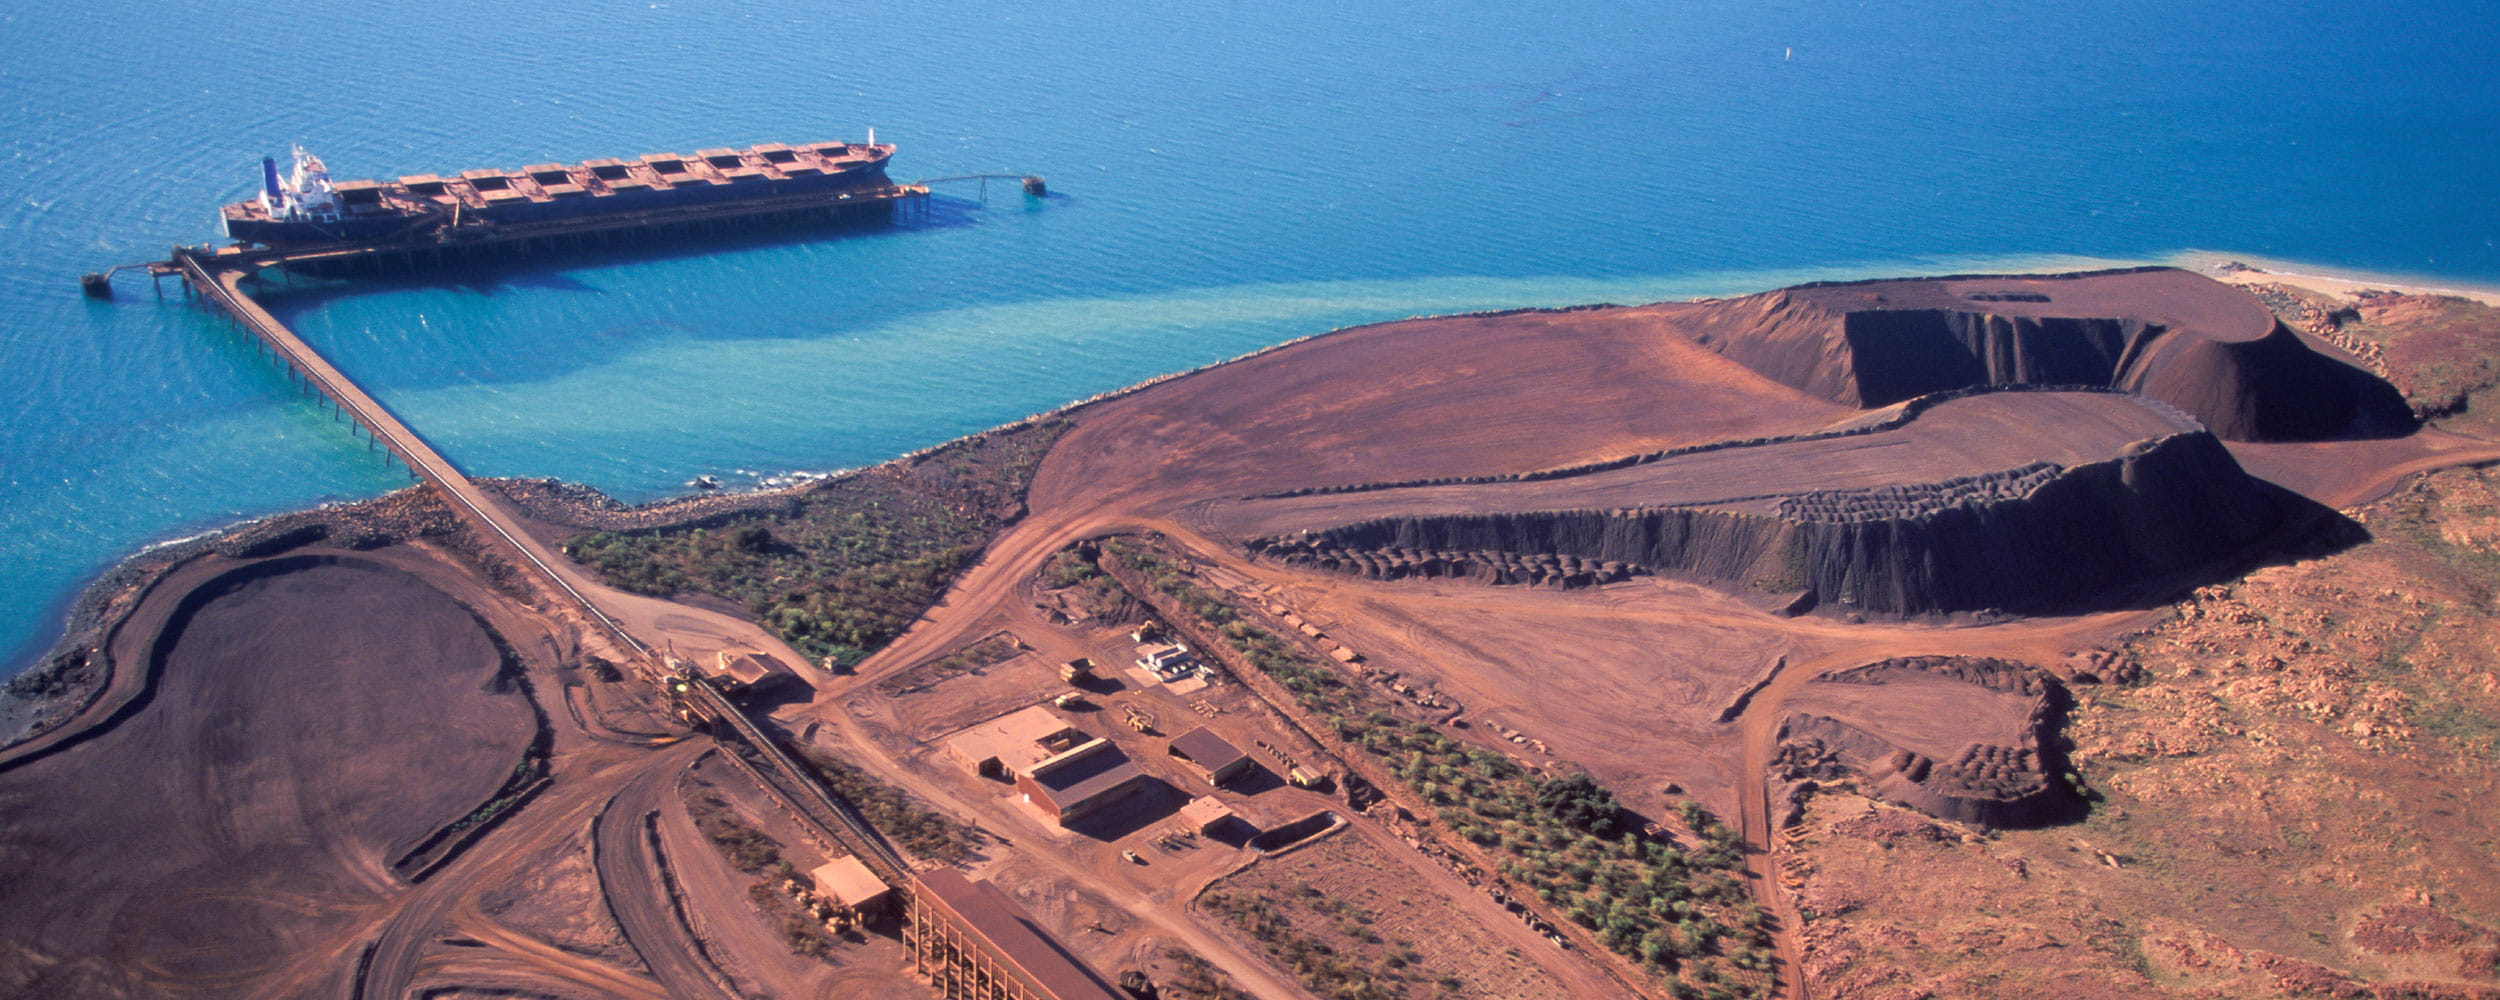 Aerial view of iron ore mine and terminal